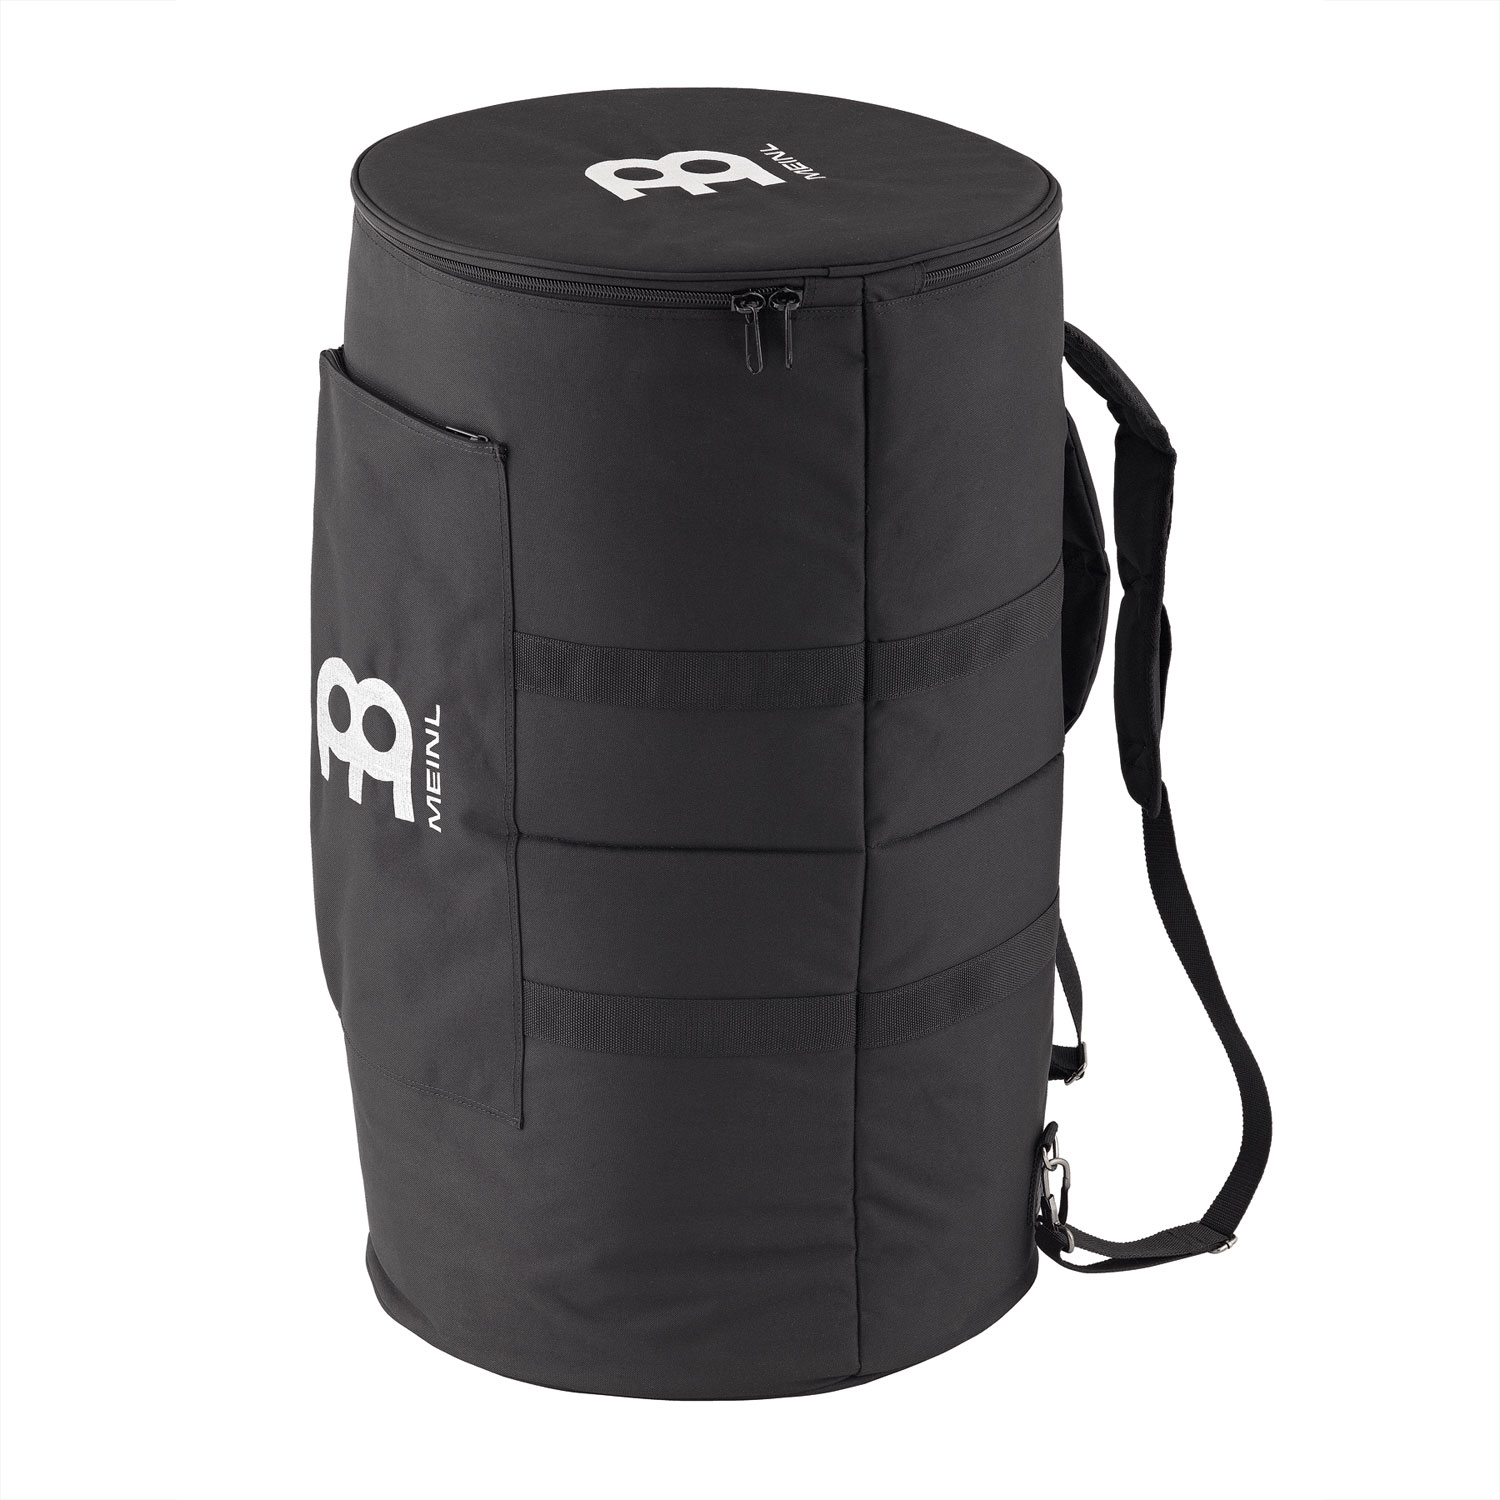 "Meinl 14"" (Diameter) x 28"" (Deep) Professional Tantam Bag"